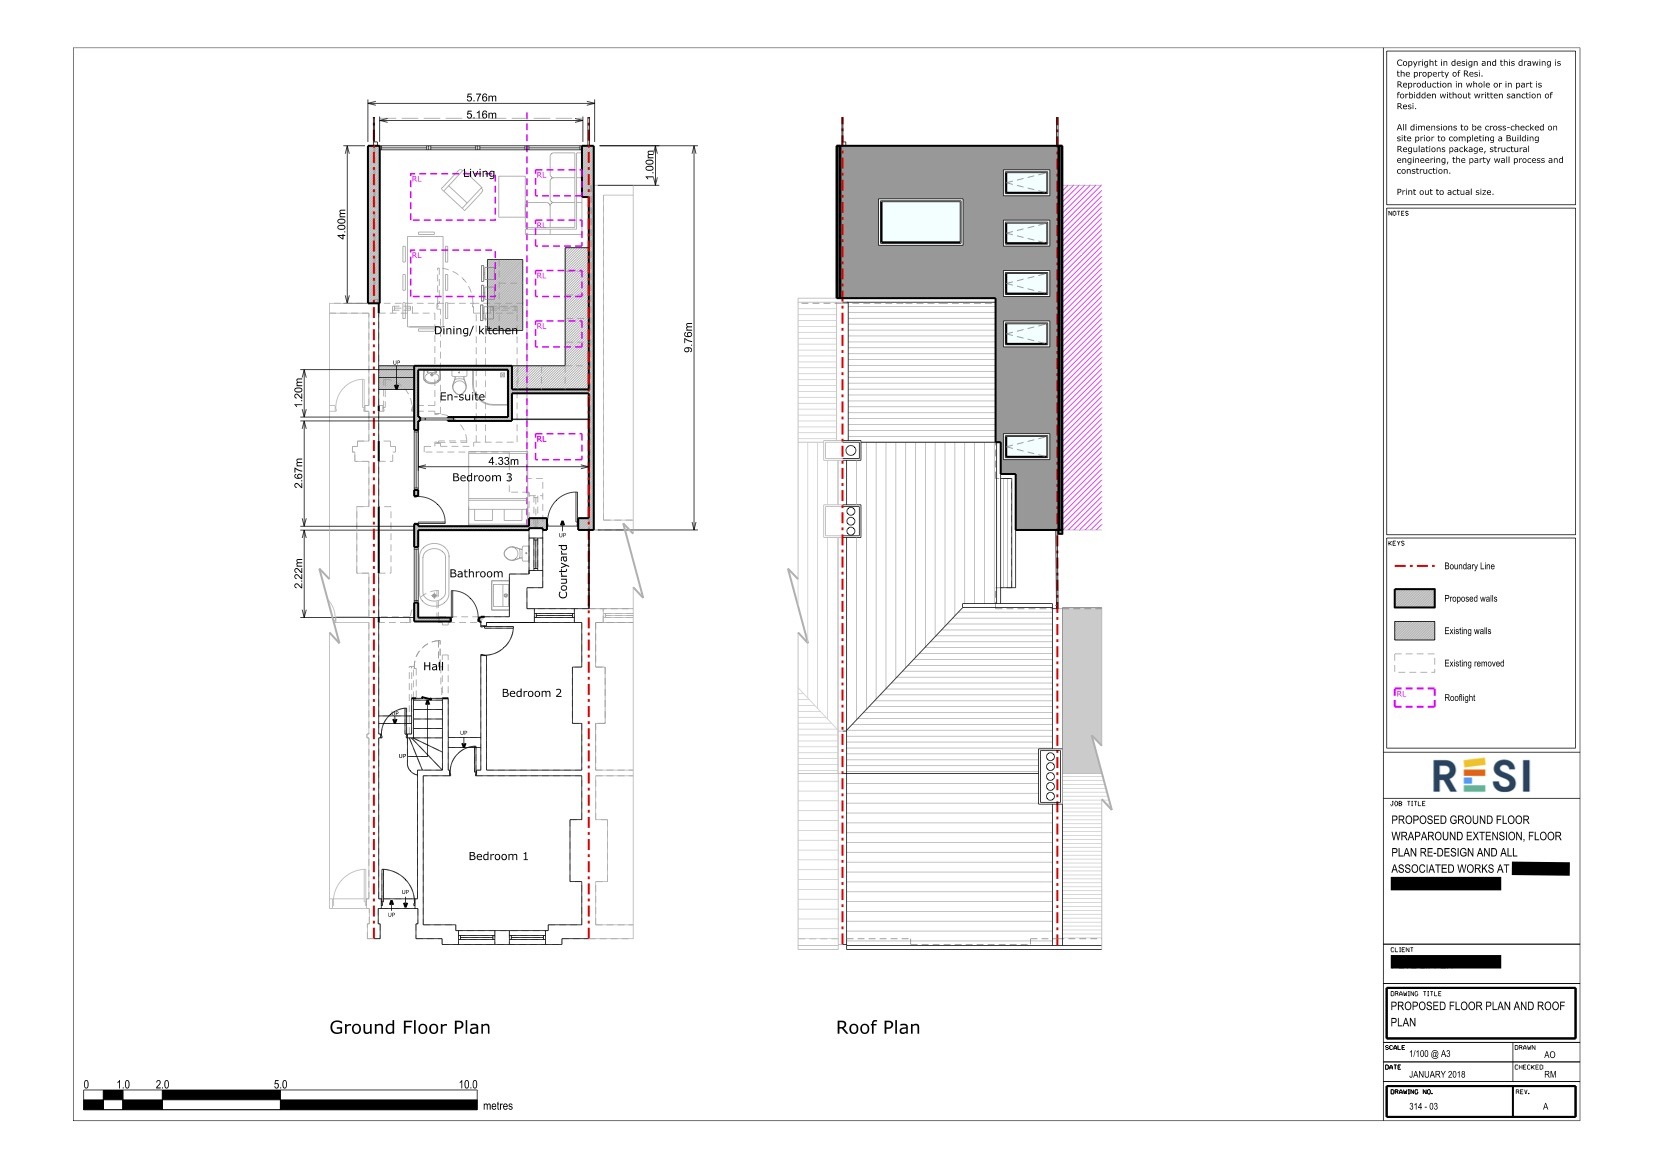 Architectural drawings rev a 3   ground floor and roof plan